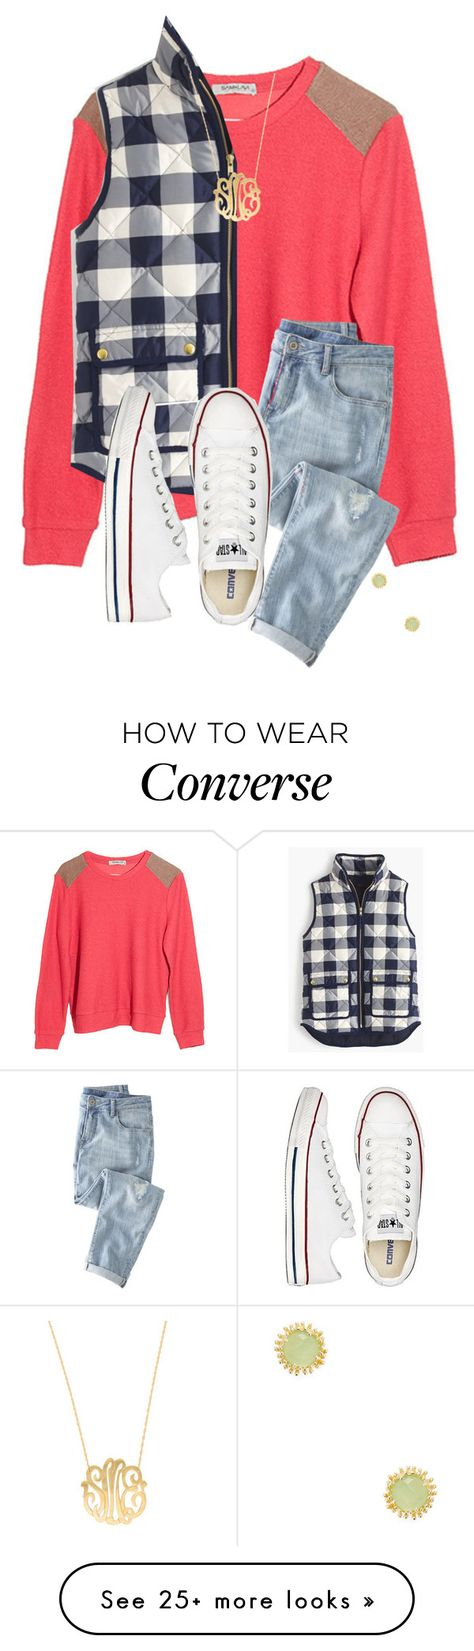 """""""Untitled #627"""" by hayley-tennis on Polyvore featuring Sam&Lavi, J.Crew, Wrap, Converse, Moon and Lola and Kendra Scott"""